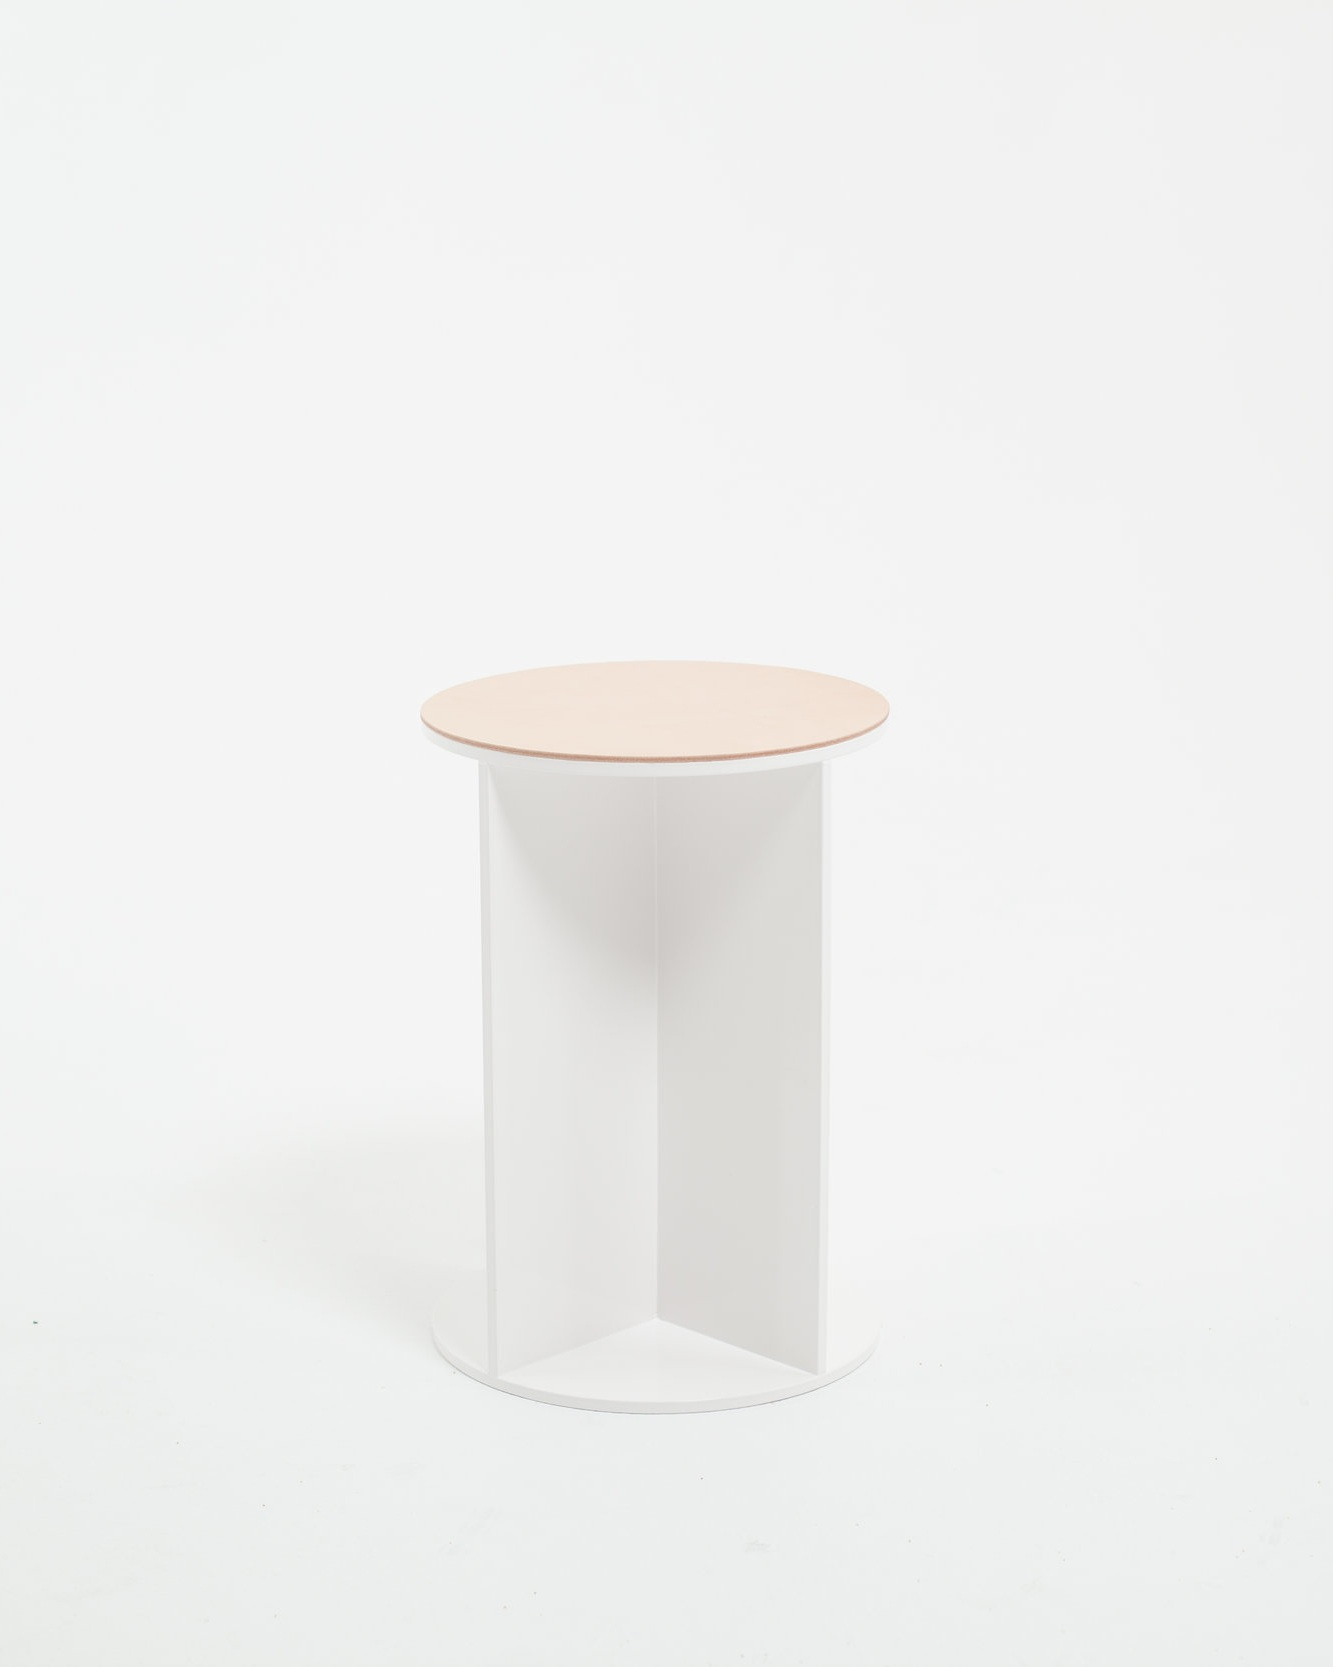 Thom+Fougere+Cafe+Stool Division 12